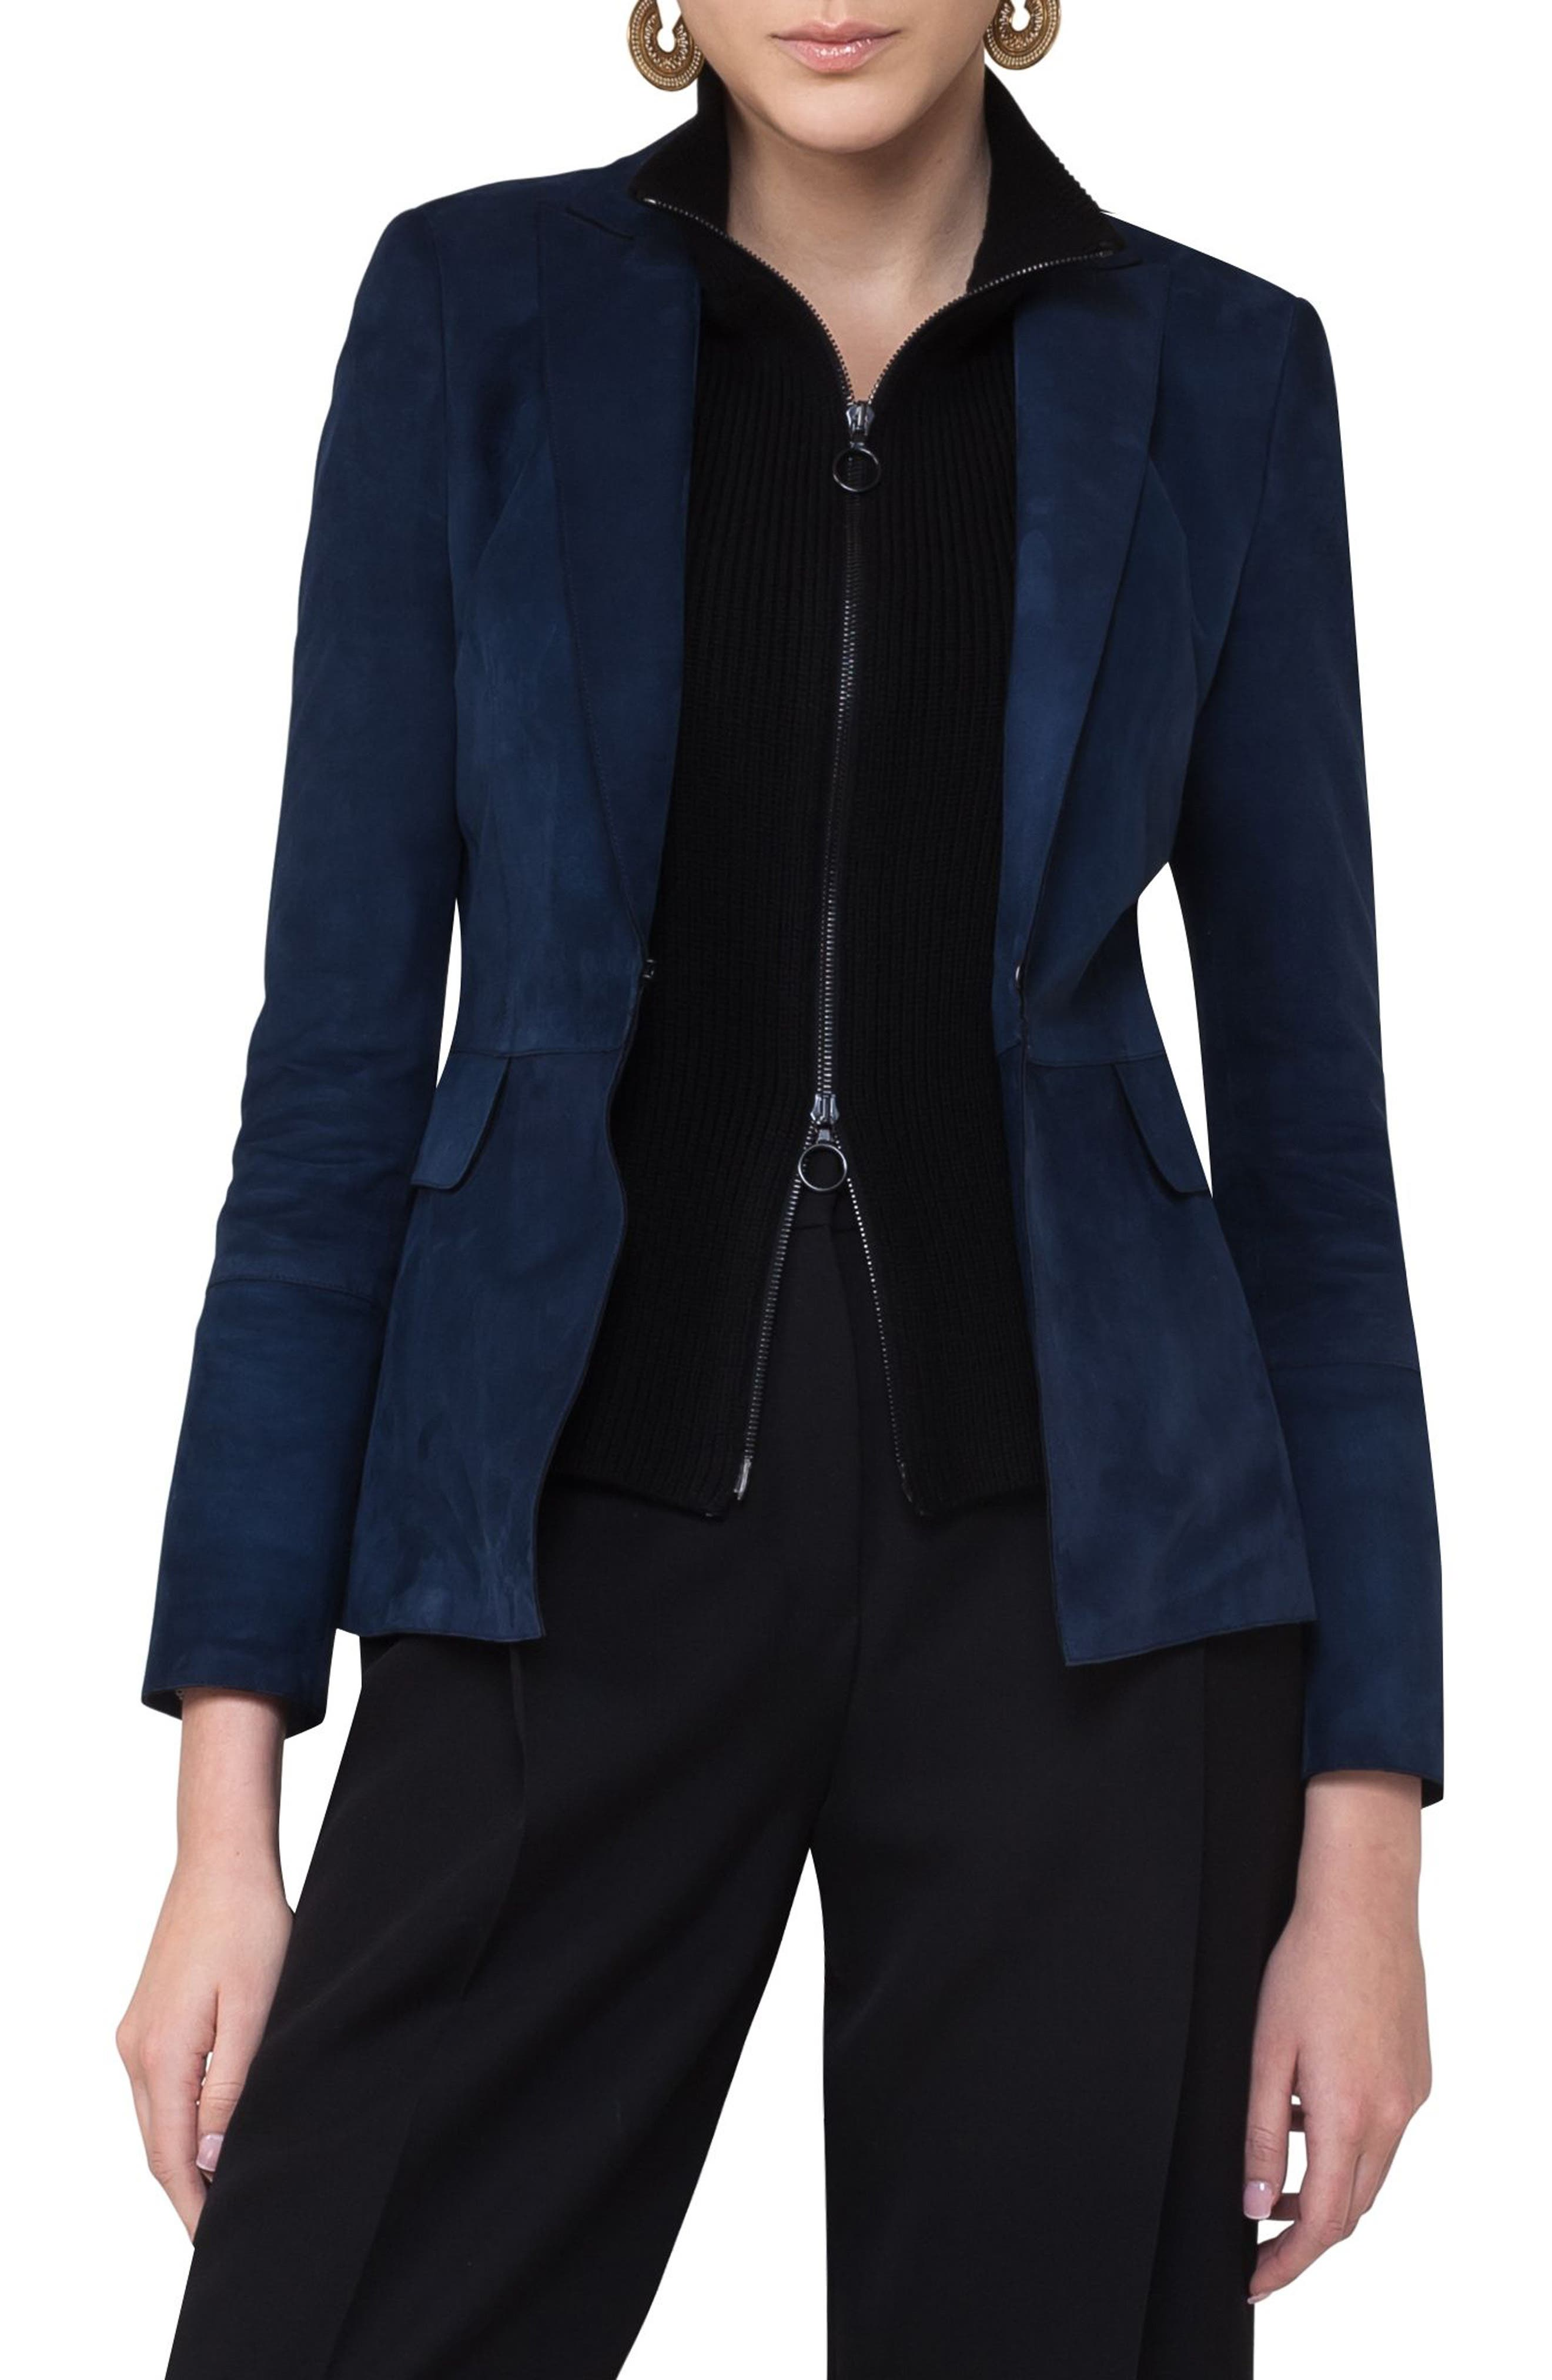 Suede Blazer with Removable Knit Insert,                             Main thumbnail 1, color,                             Solid Blue Denim